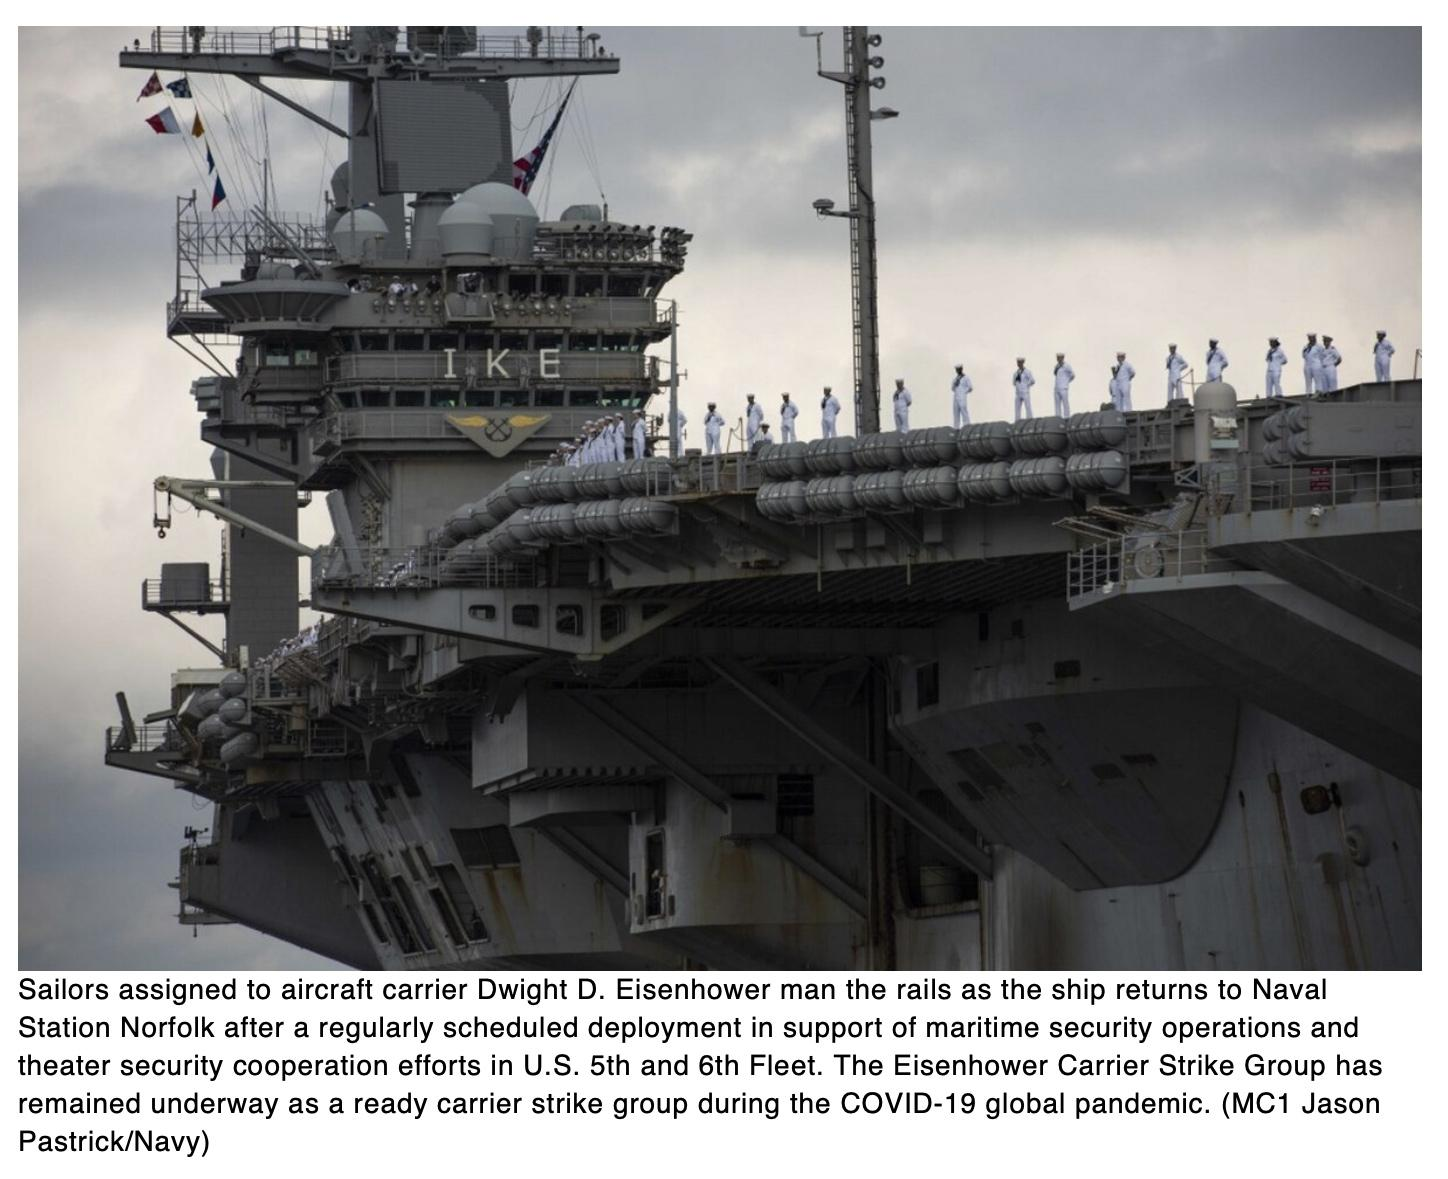 Carrier Ike back in Norfolk following more than 200 consecutive days at sea